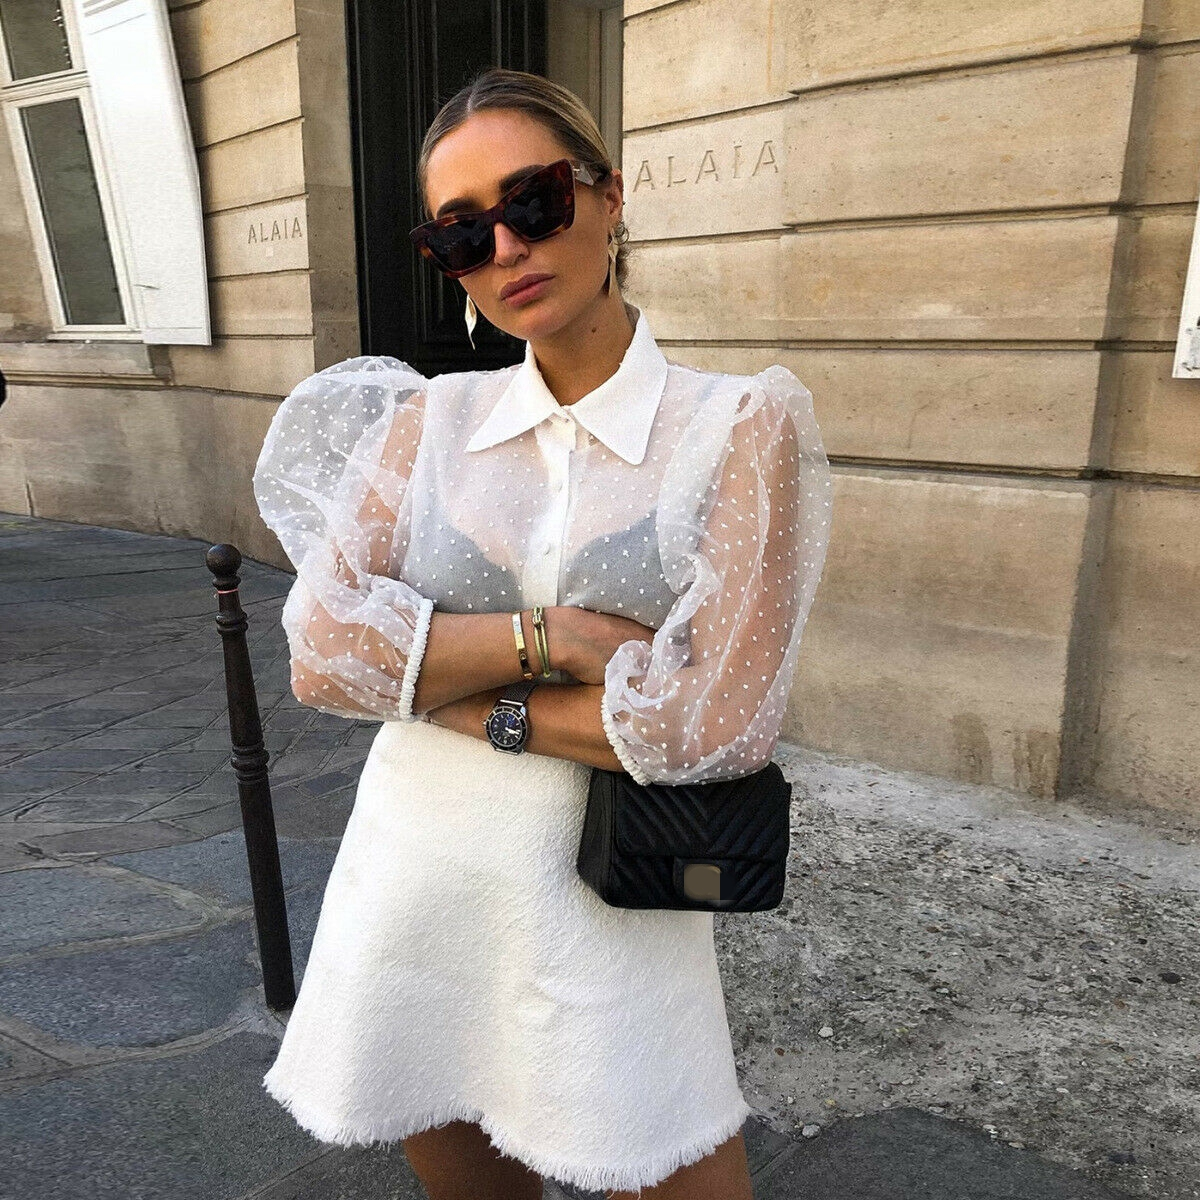 High Street Vintage Women Sheer Mesh Lace Polka Dot Puff Sleeve Button Down Ladies See-through Top   Shirt     Blouse